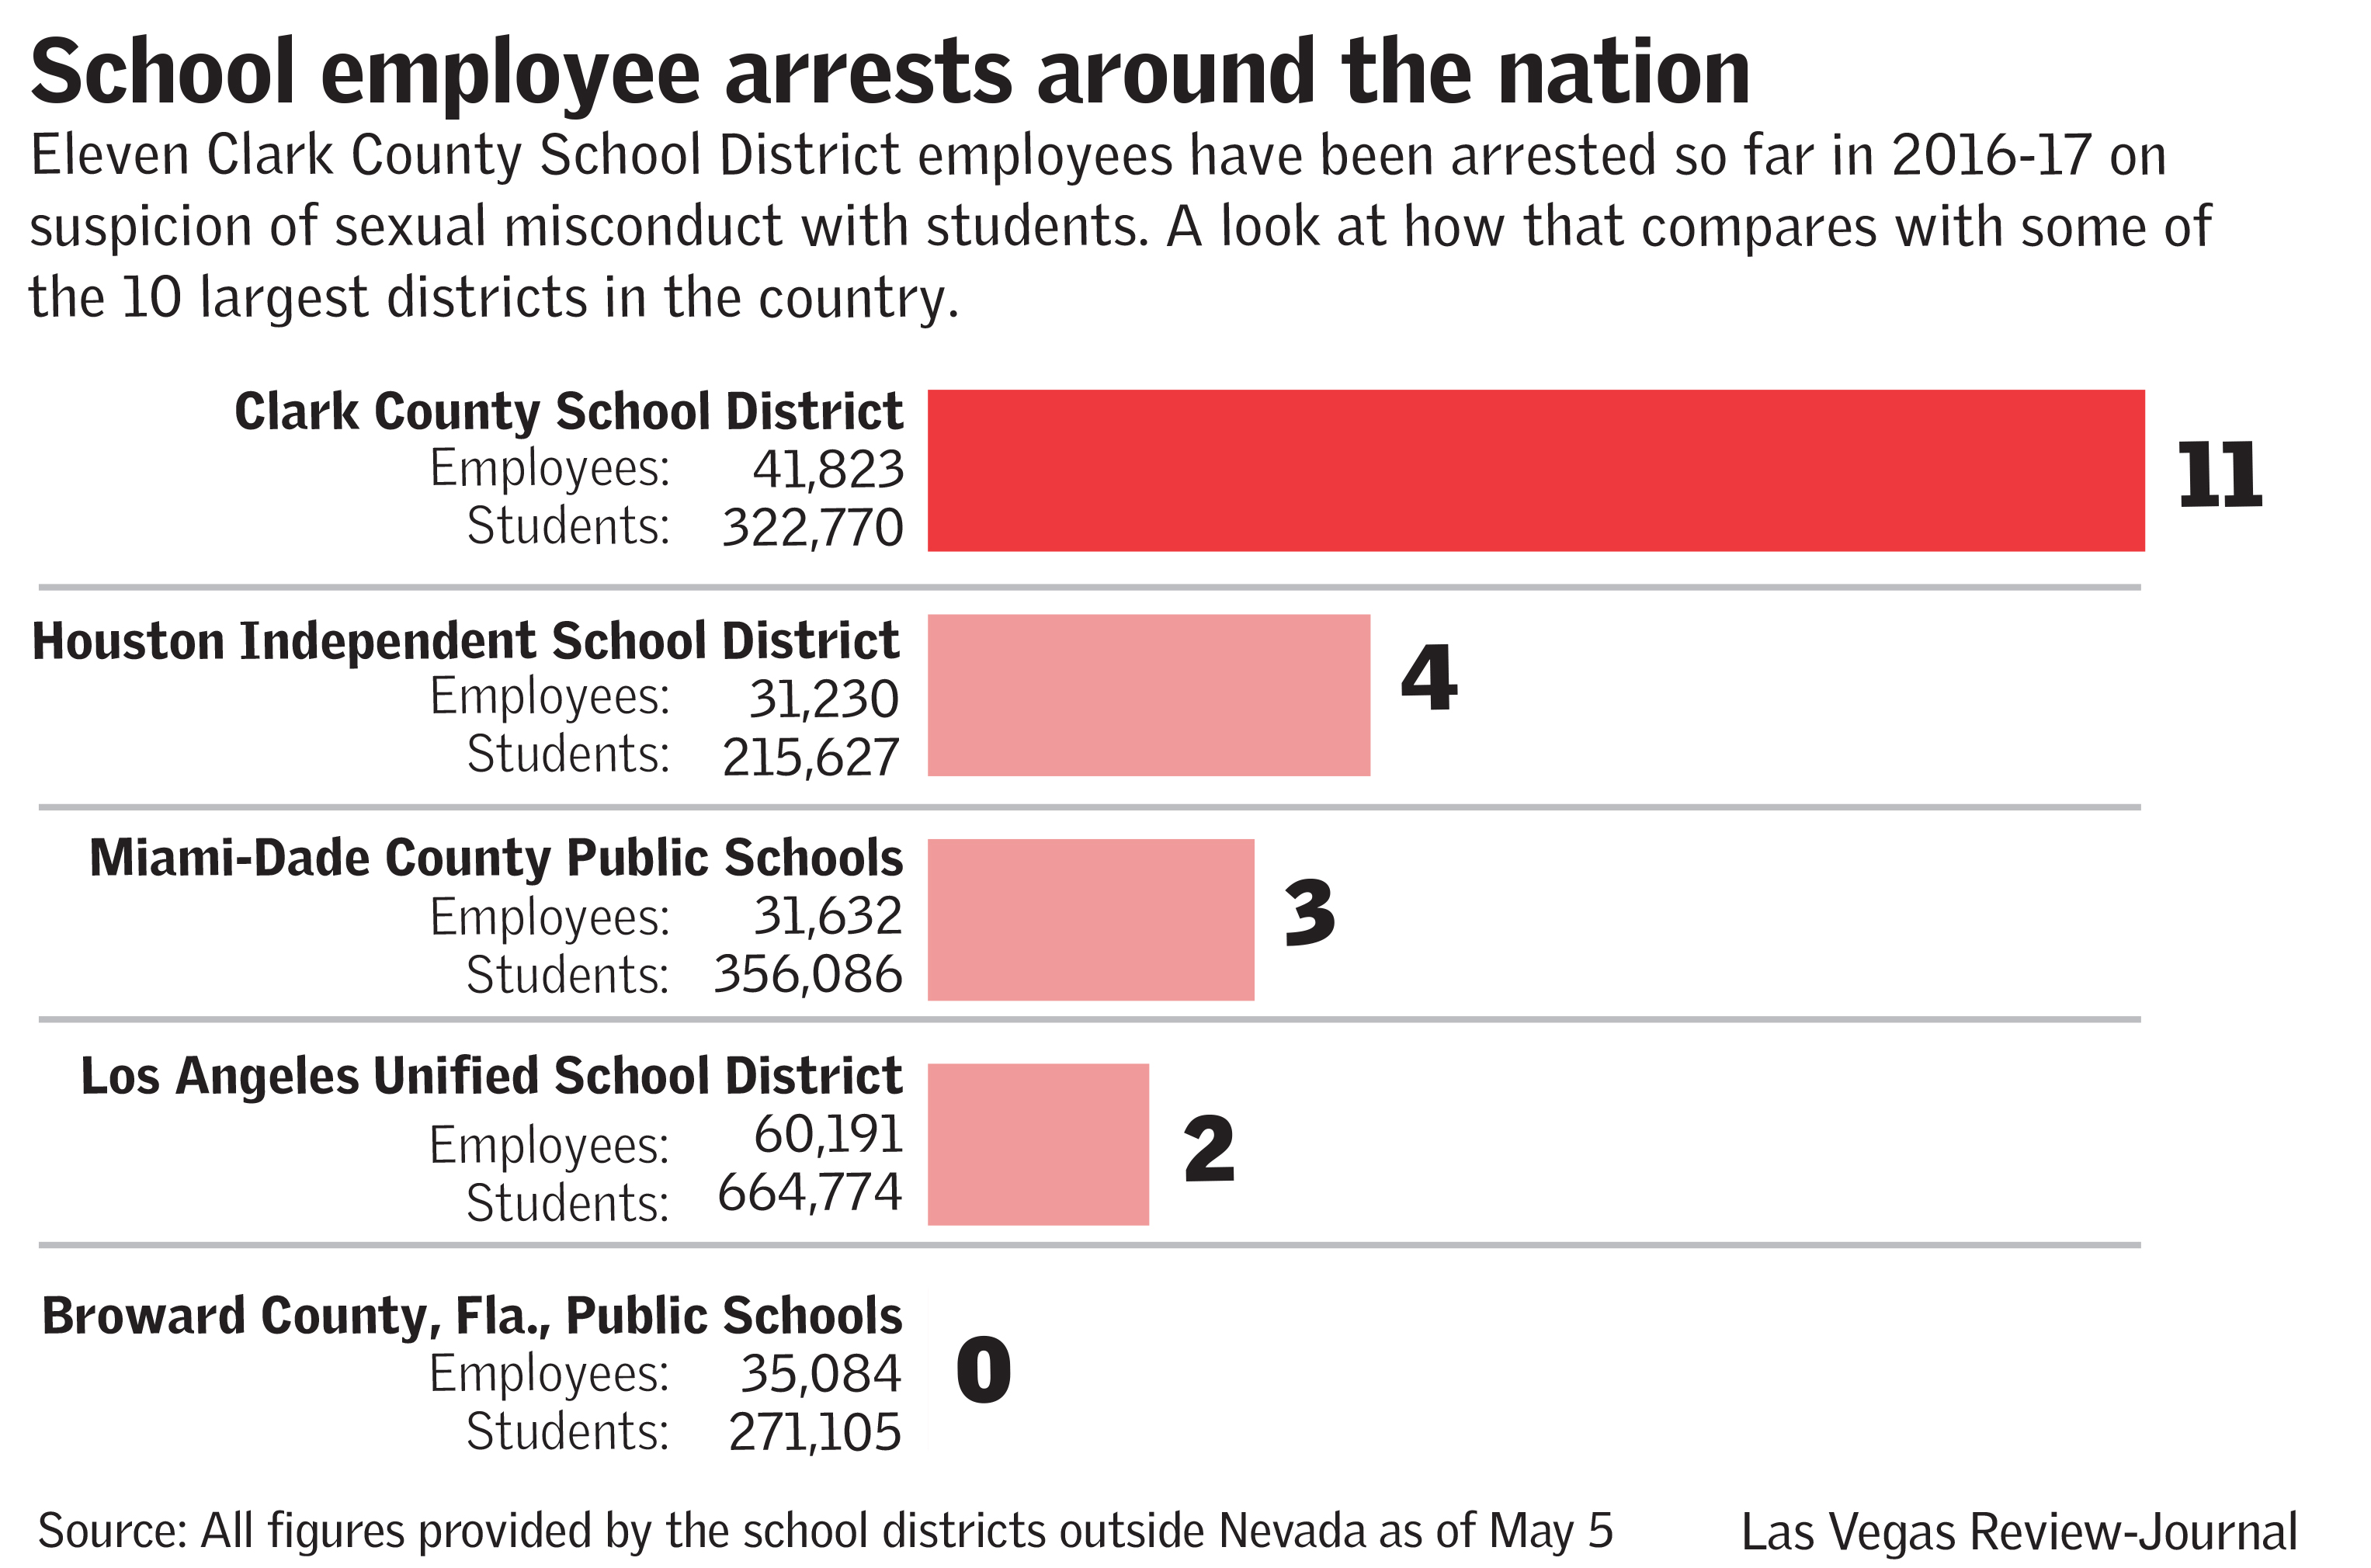 School employee arrests around the nation (Las Vegas Review-Journal)